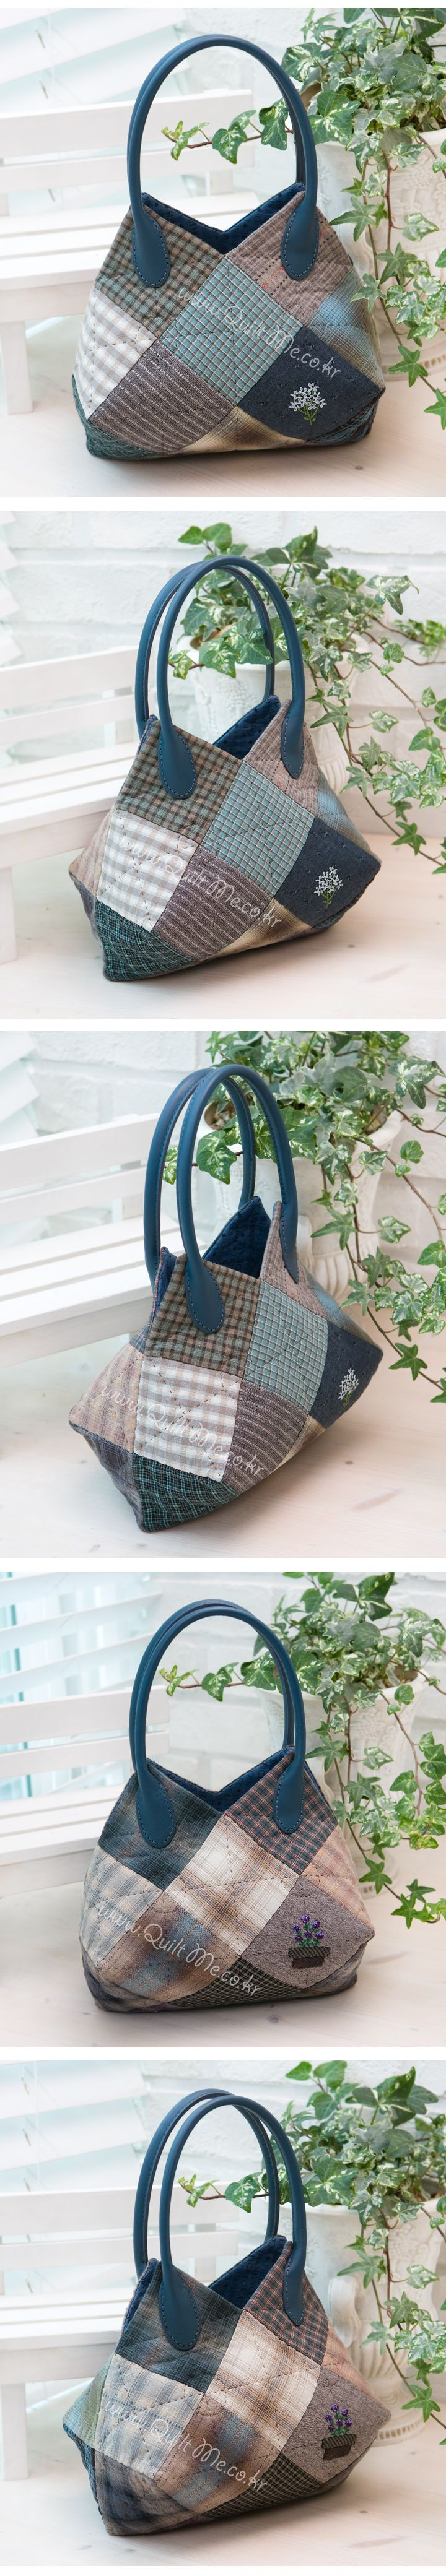 quilt bag - I love this one, site is in korean but the pics give me an idea of how its made. :)